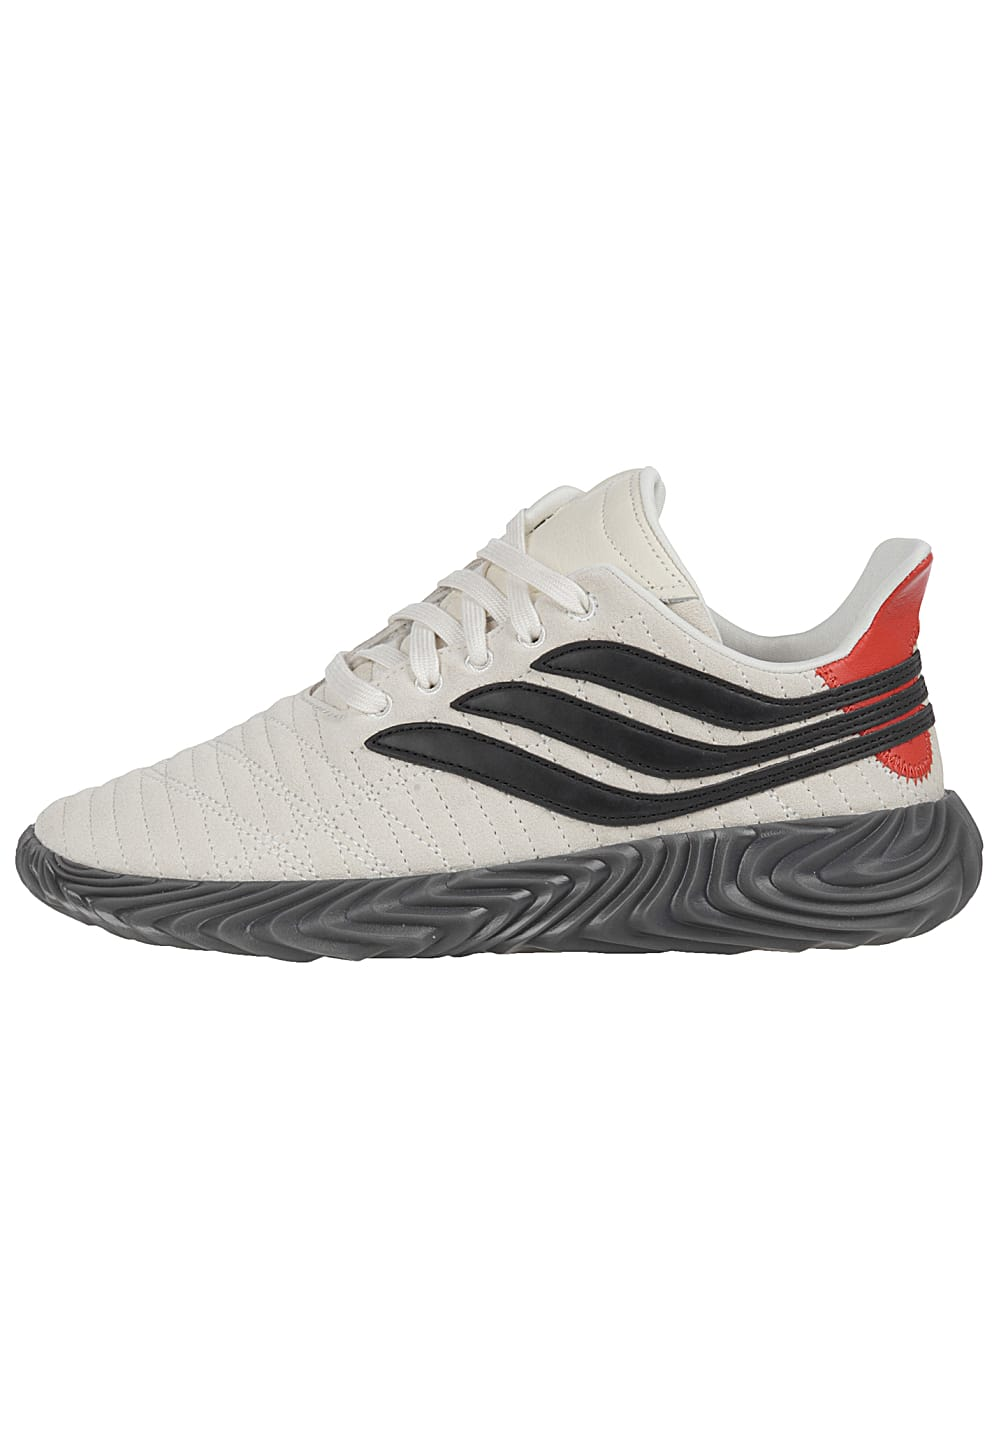 mens colorful adidas shoes